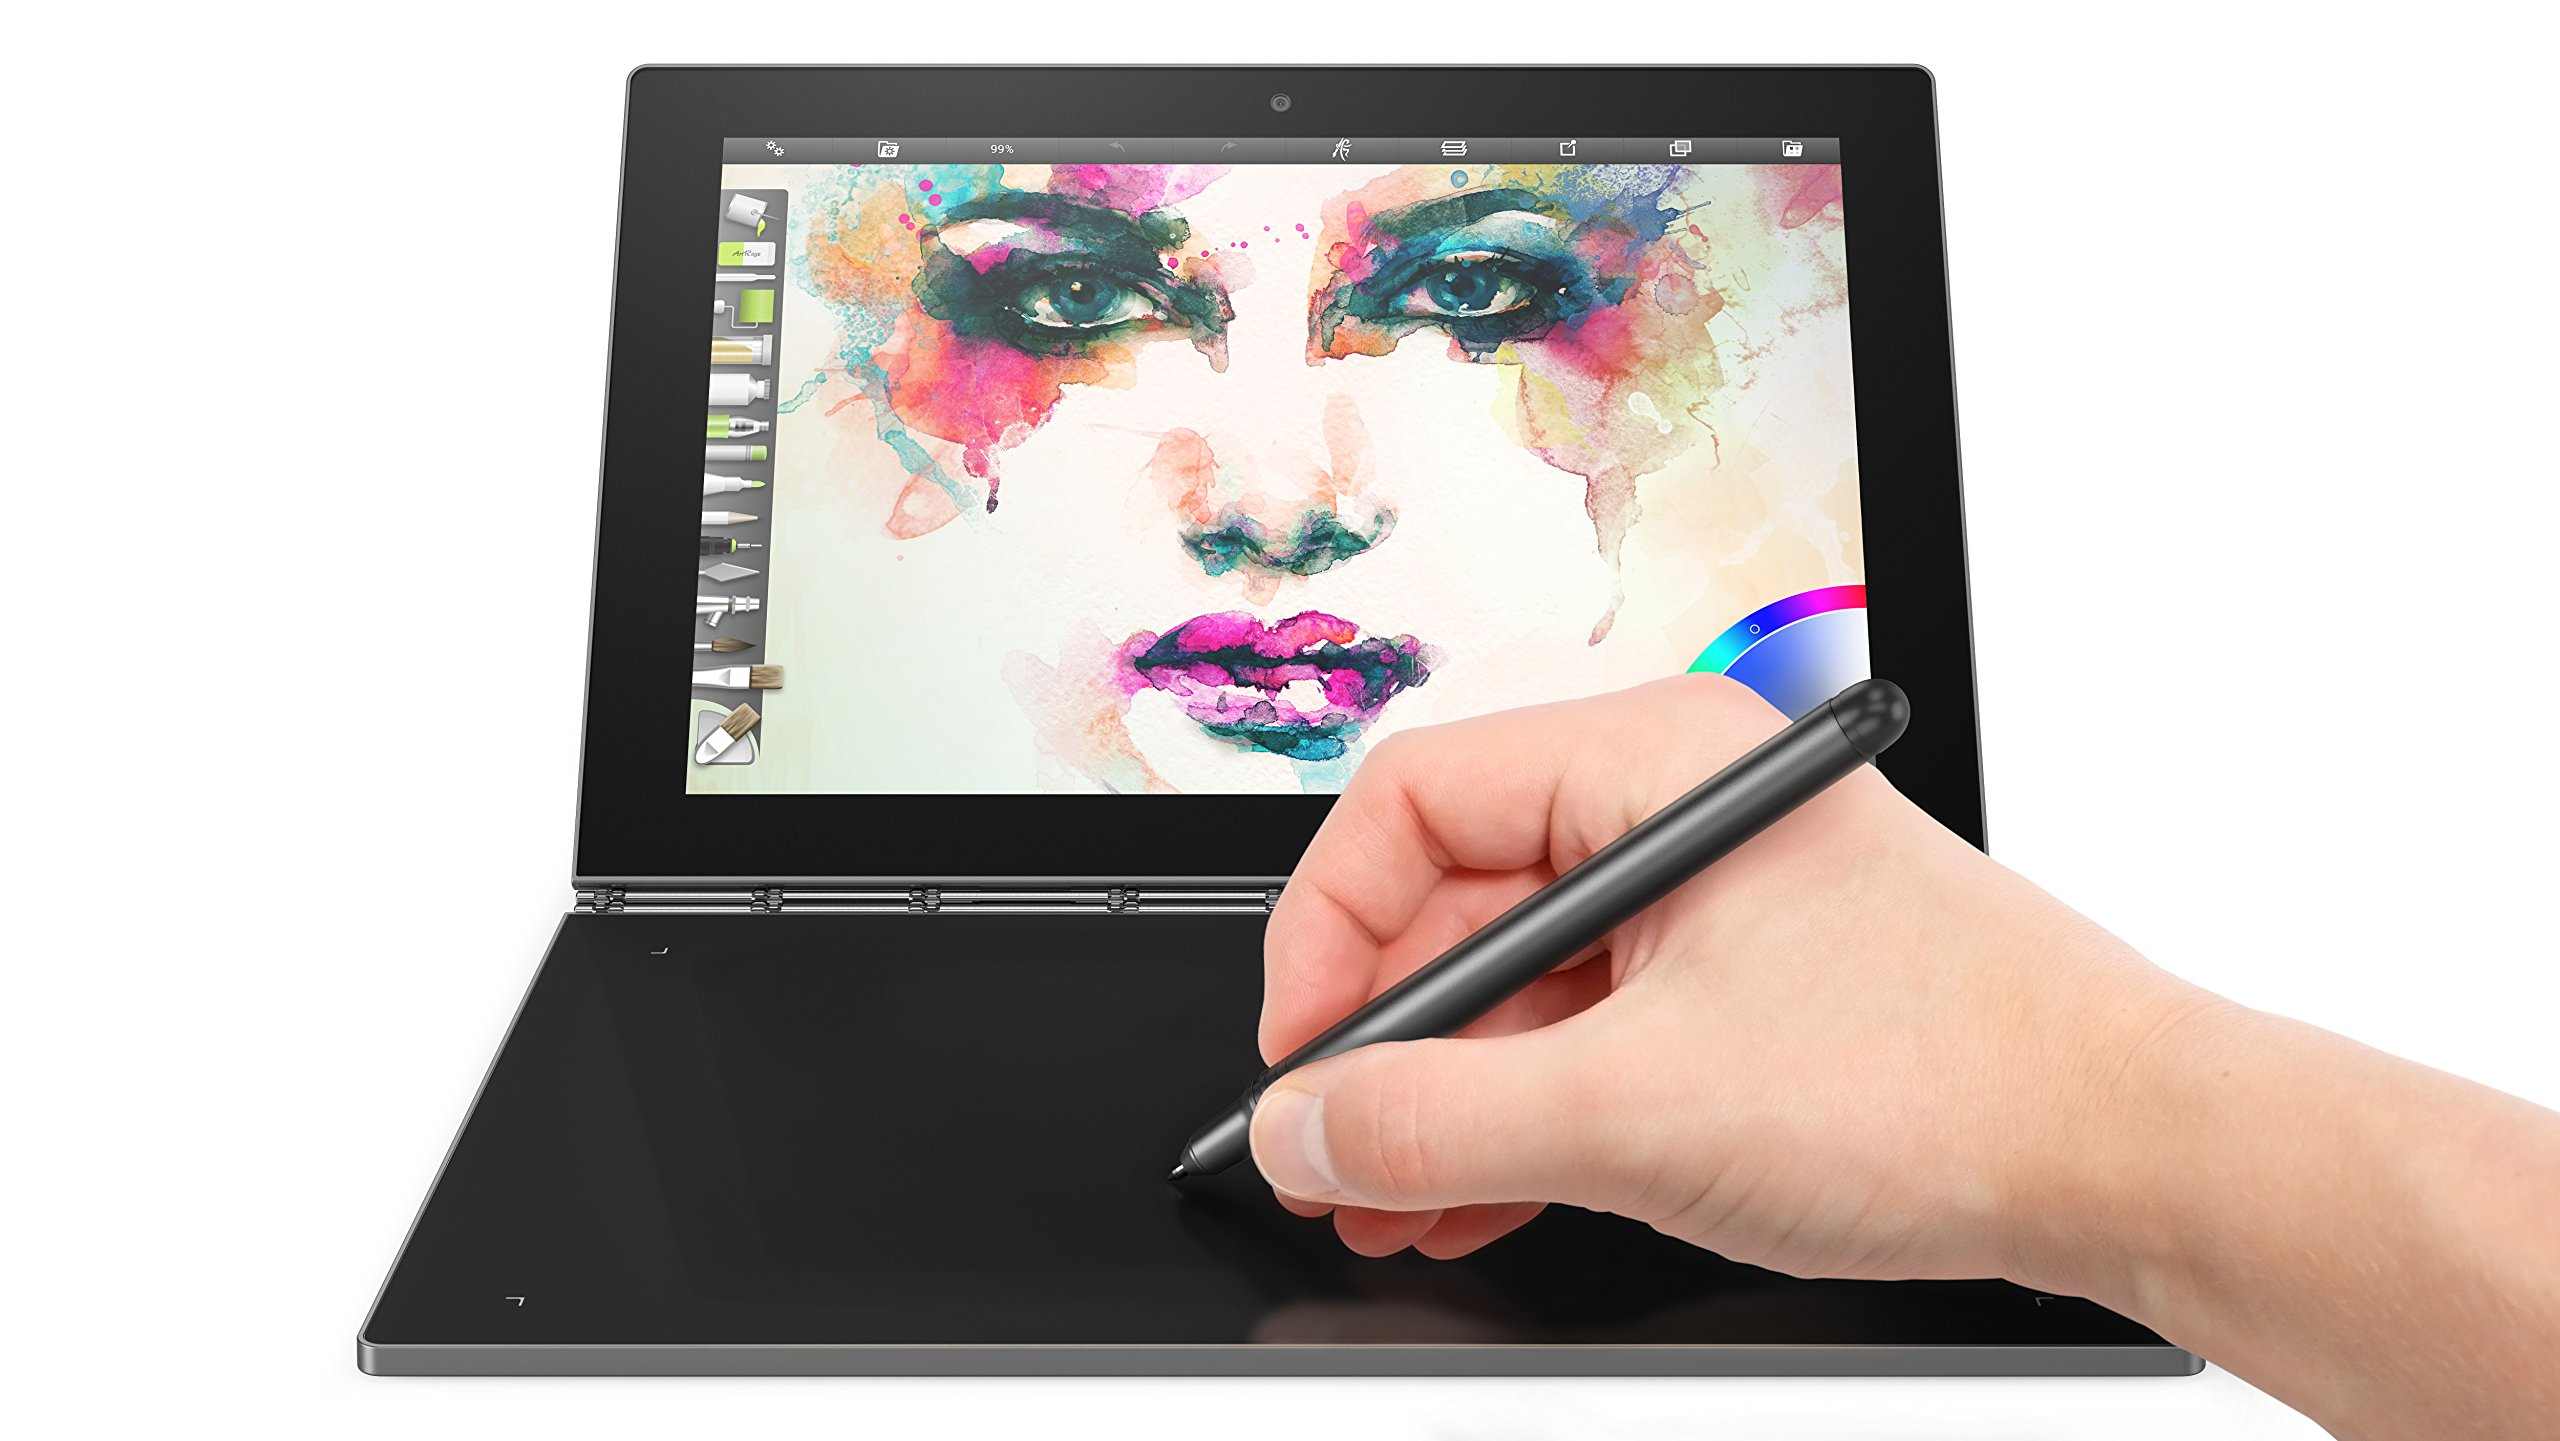 Lenovo Yoga Book - FHD 10.1'' Android Tablet - 2 in 1 Tablet (Intel Atom x5-Z8550 Processor, 4GB RAM, 64GB SSD), Gunmetal, ZA0V0035US by Lenovo